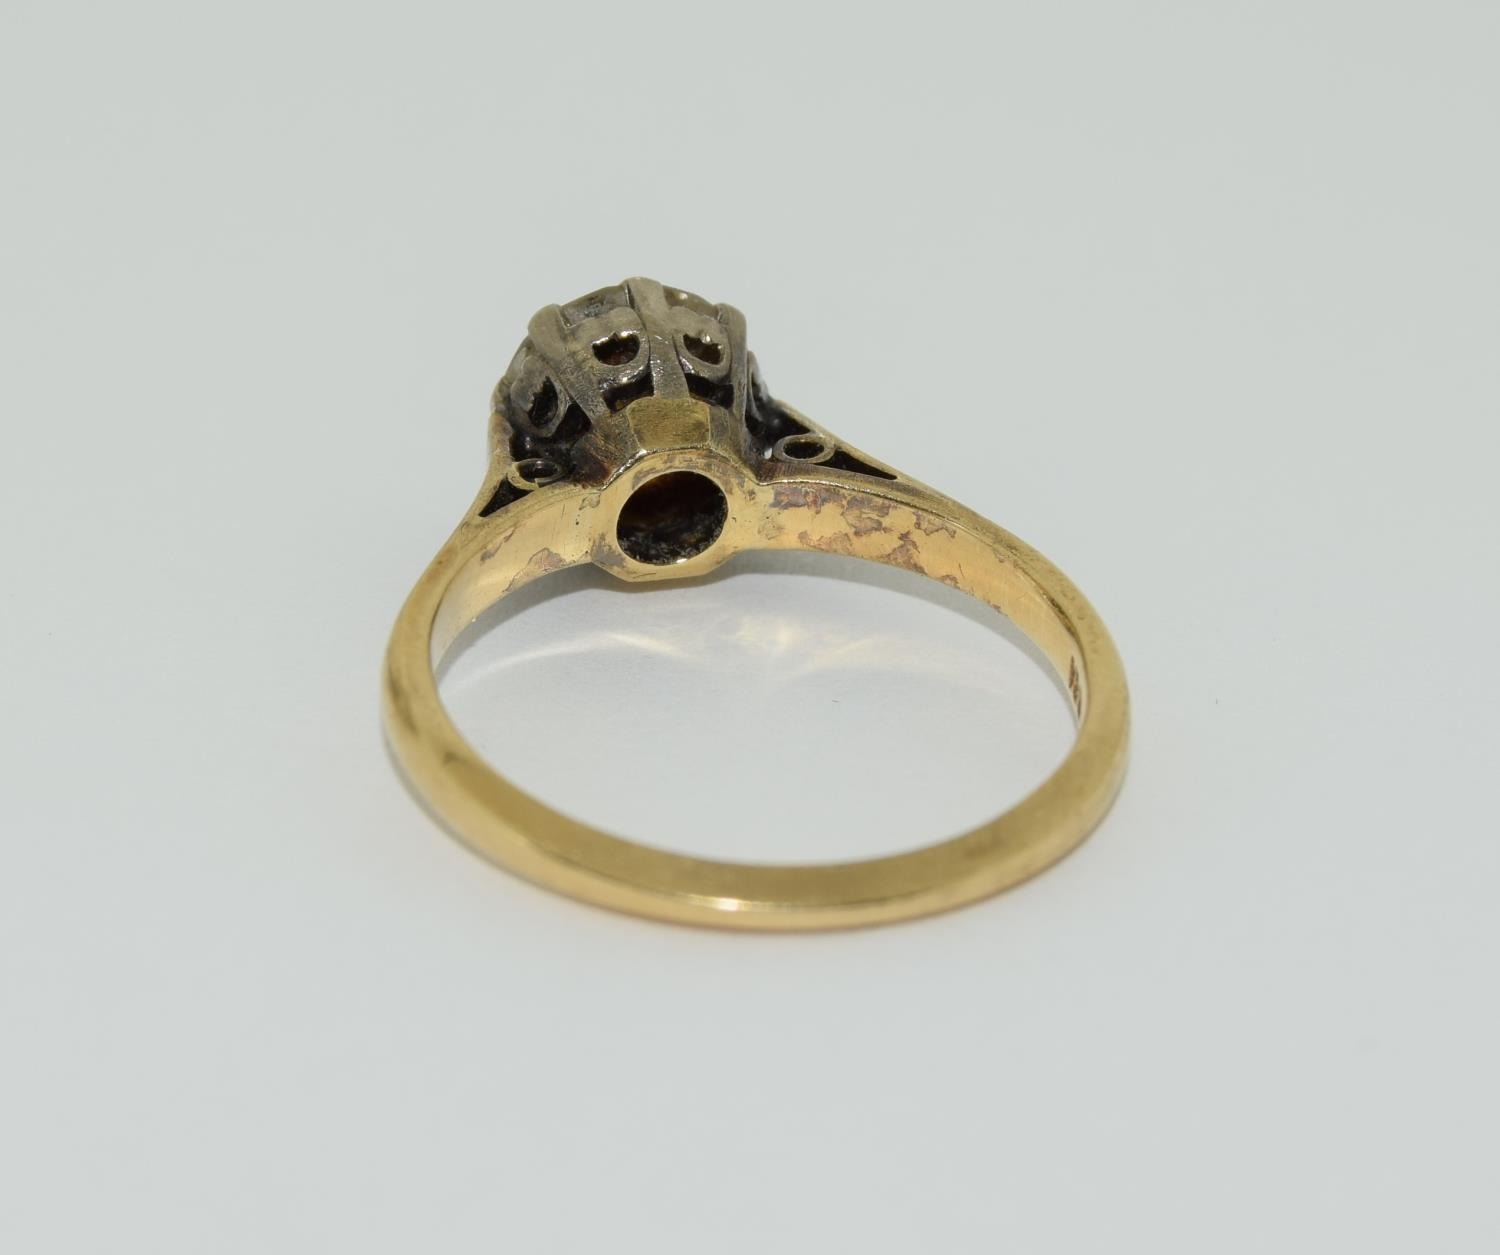 An 18ct gold ladies diamond solitaire ring approx 1.5ct, Size M. - Image 3 of 6